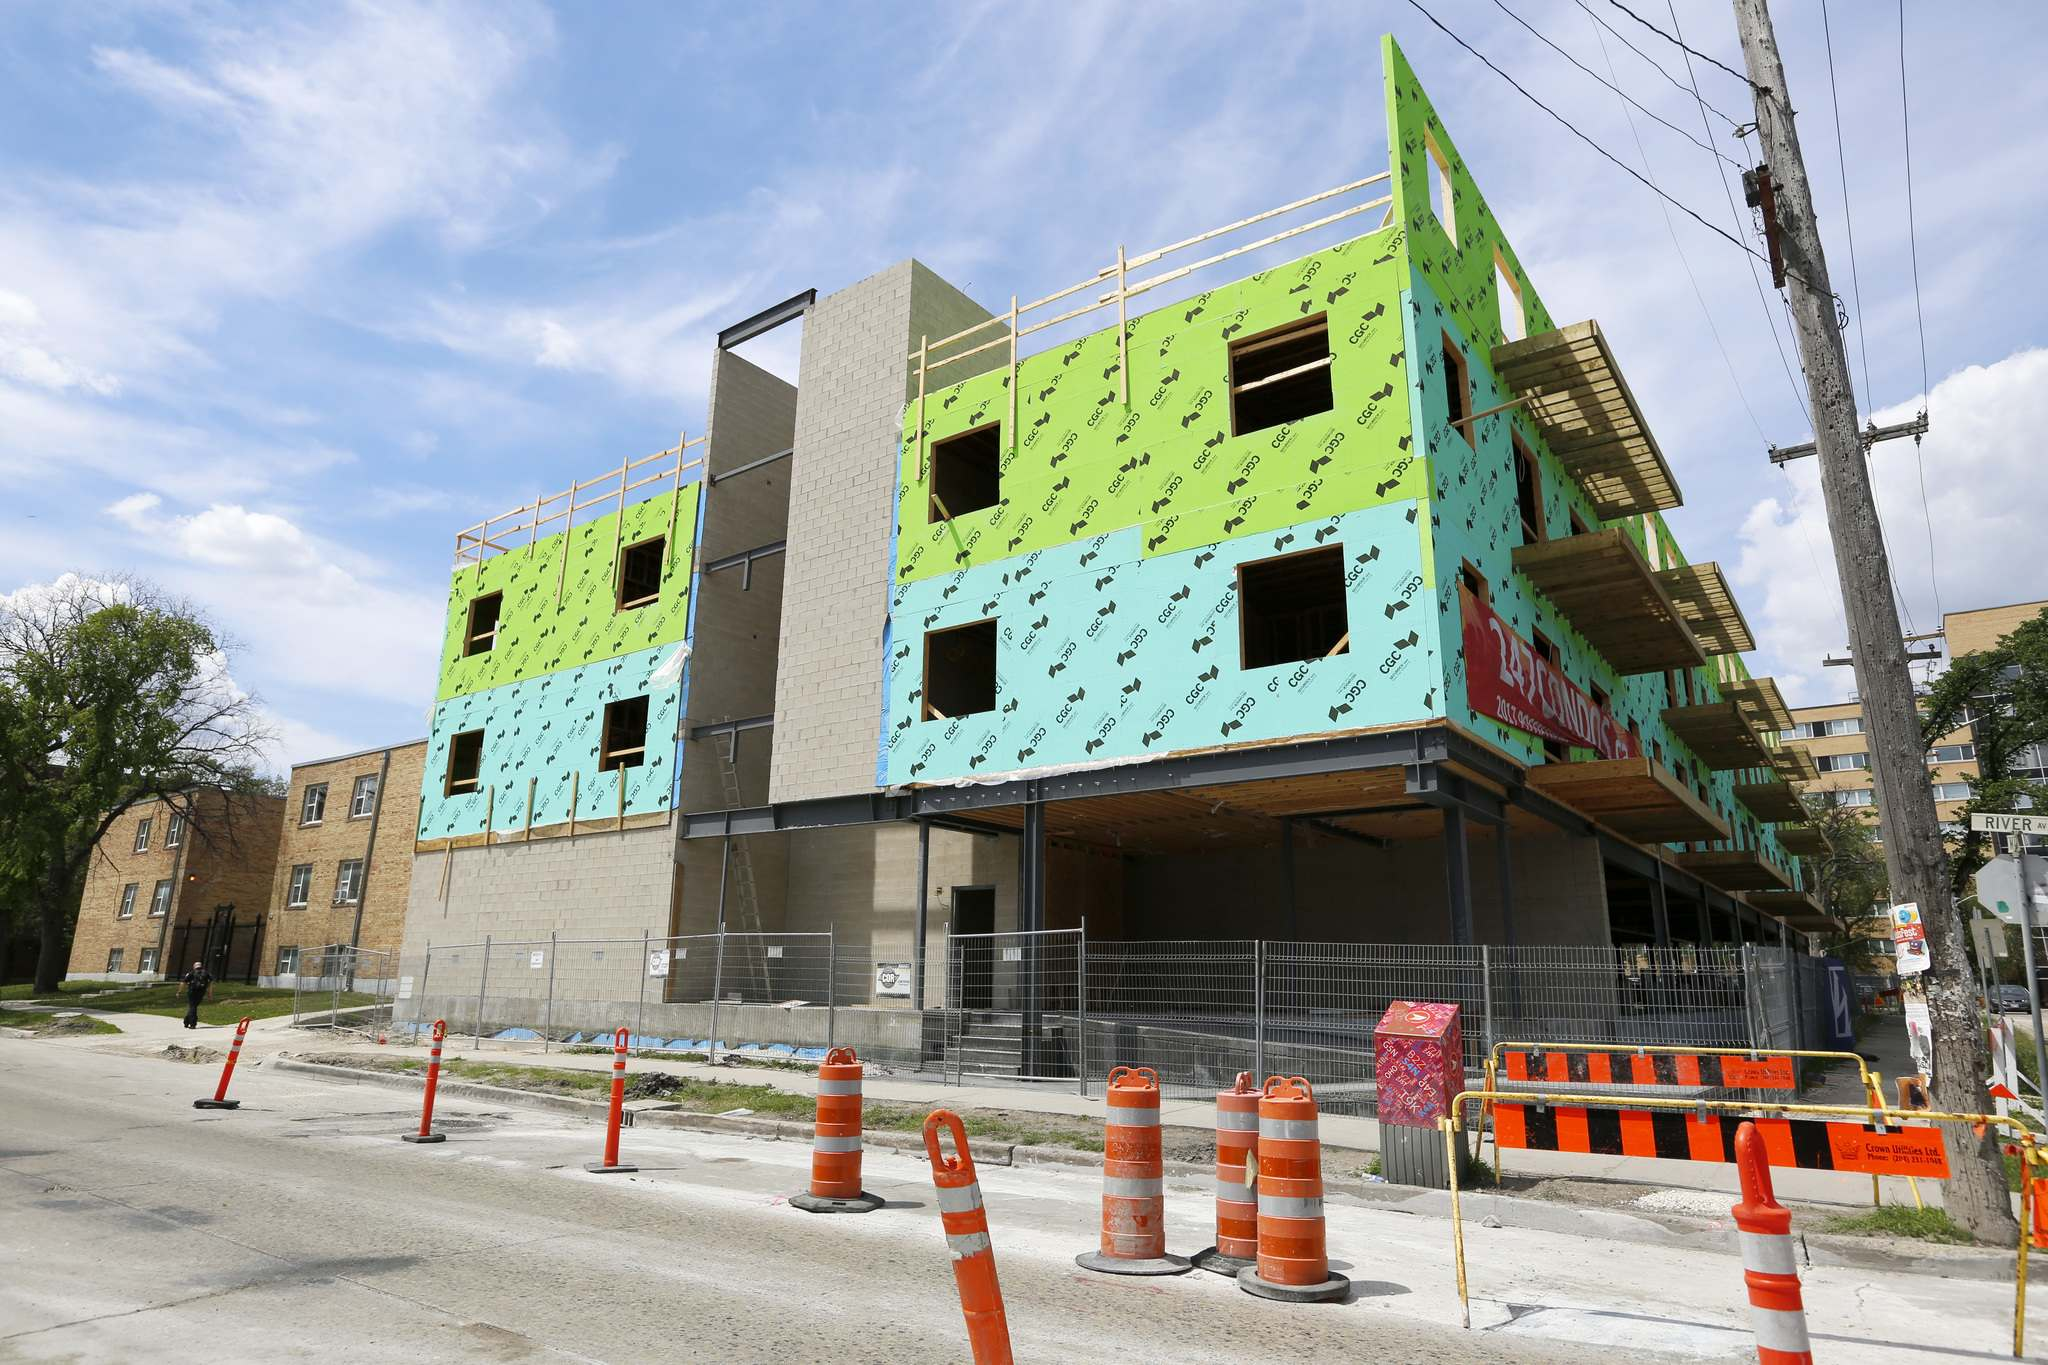 A vagueness in city documents has fuelled disputes between homeowners who expect city hall to protect the character of their neighbourhoods versus developers promoting needed residential infill projects. (Justin Samanski-Langille / Winnipeg Free Press files)